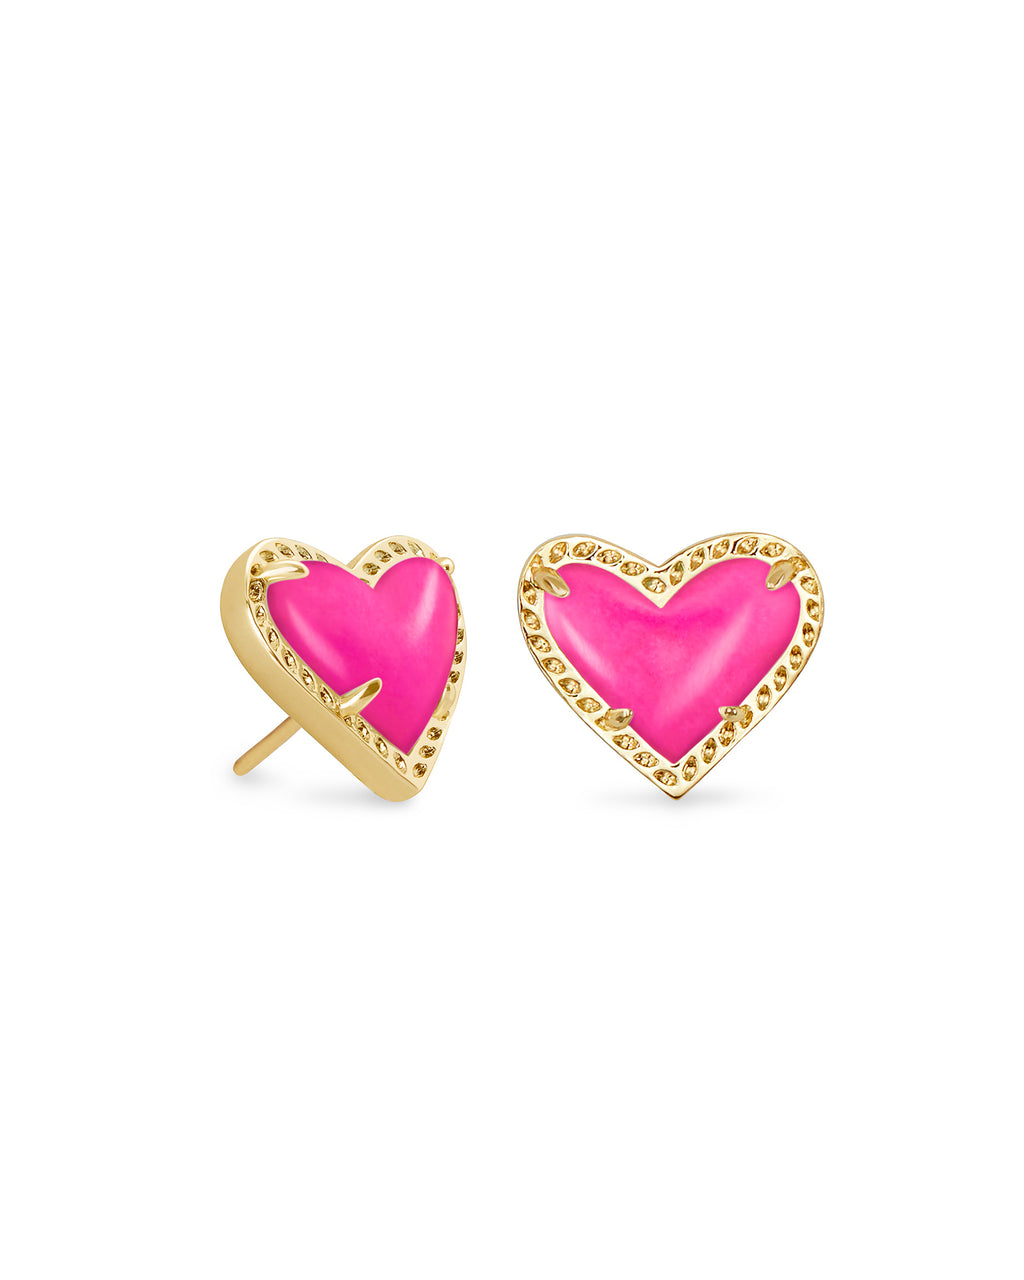 Kendra Scott Ari Heart Stud Earrings - Gold/Magenta Magnesite